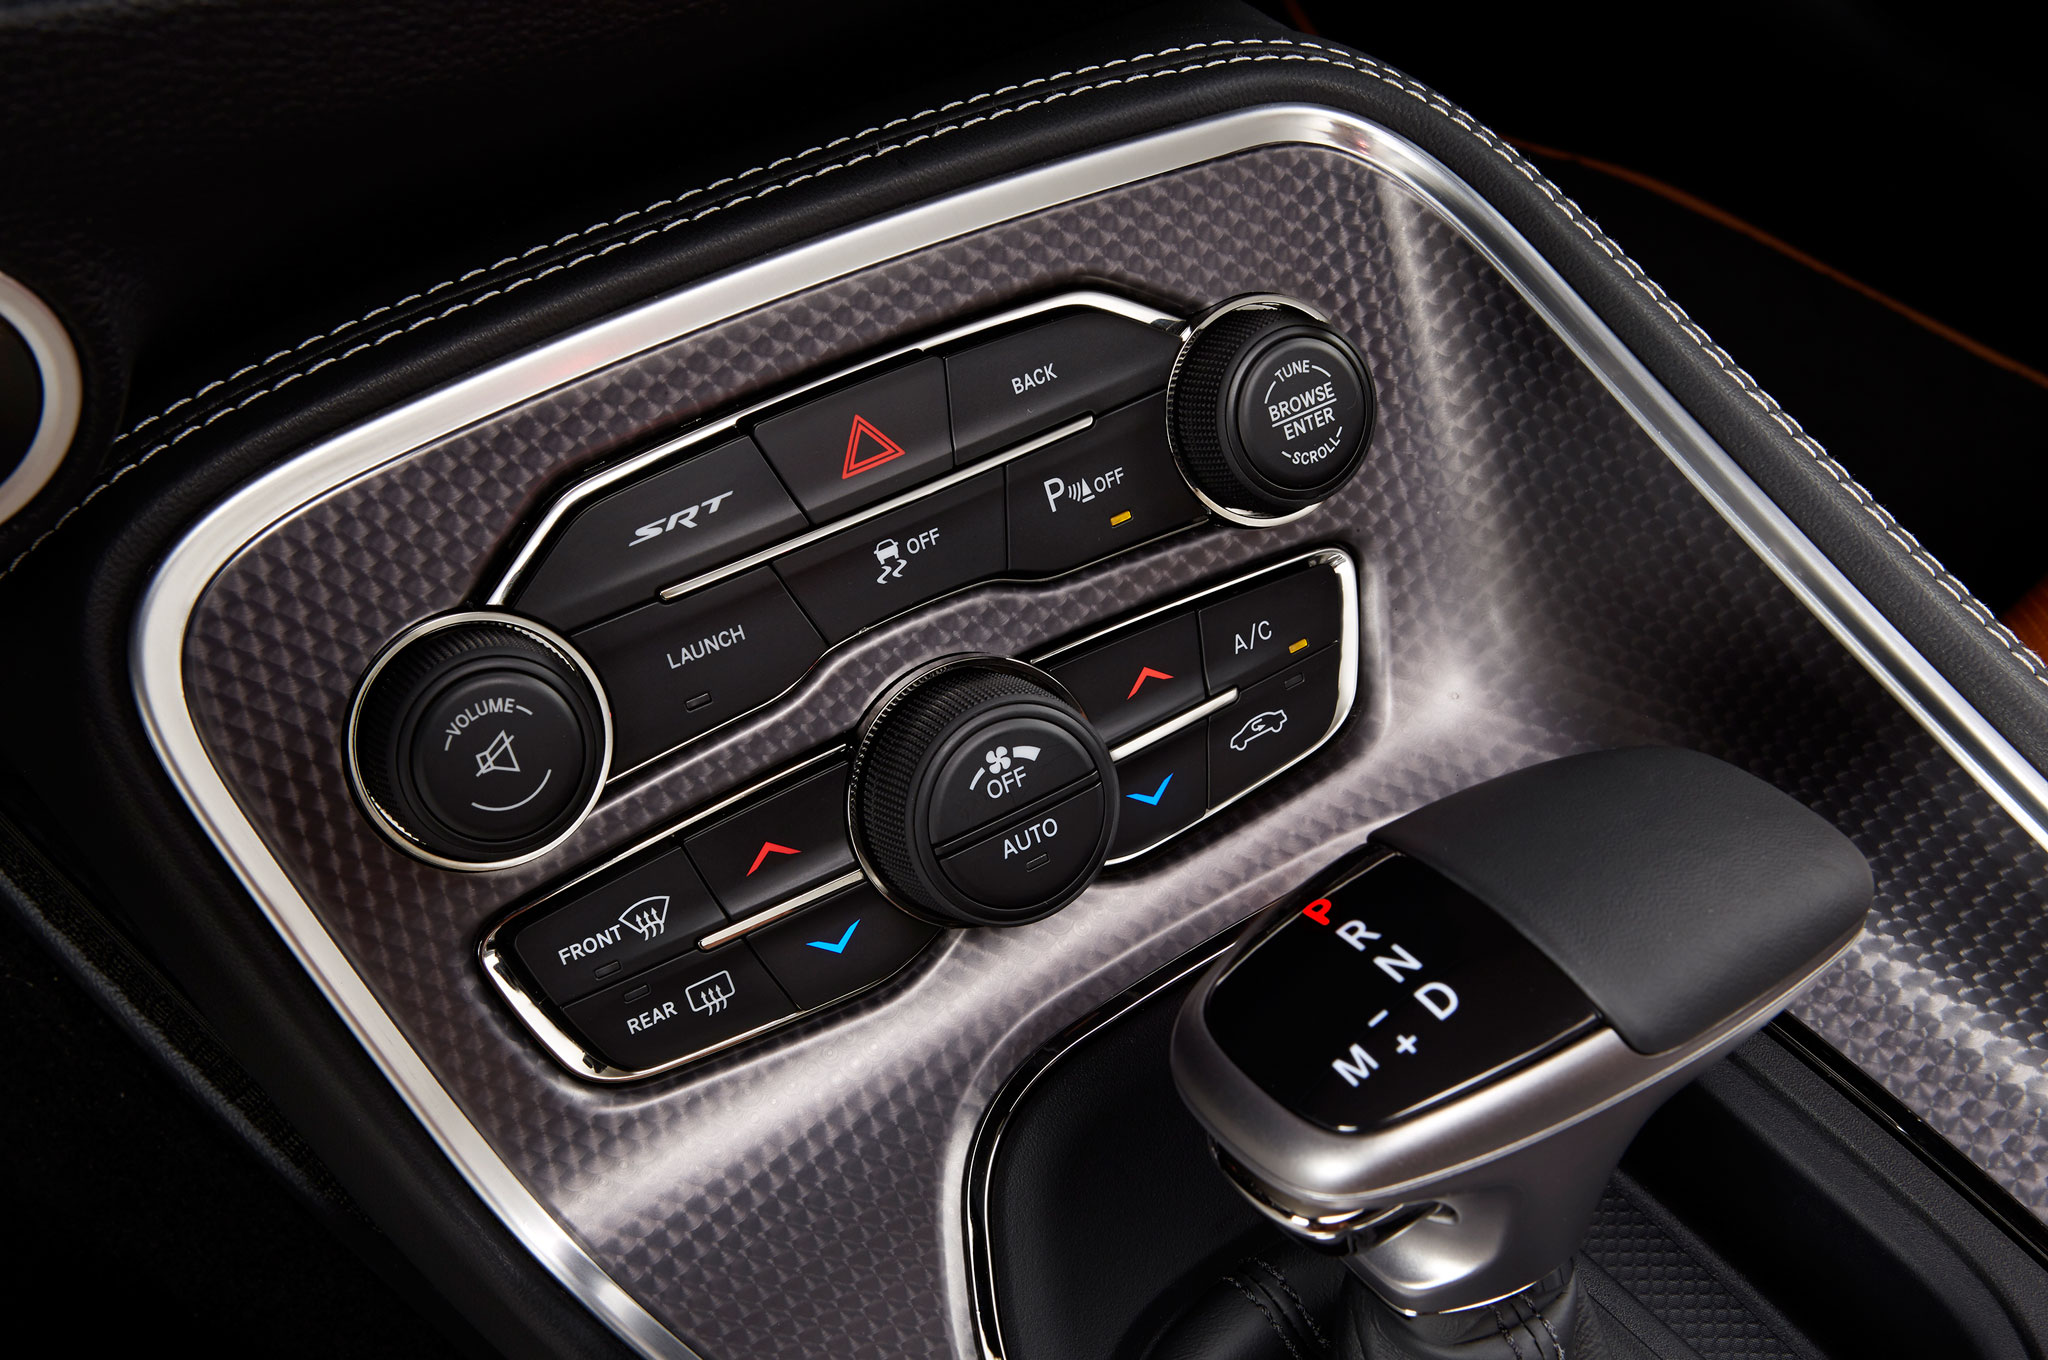 dodge challenger 2015 interior. 2015 dodge challenger head unit and control interior